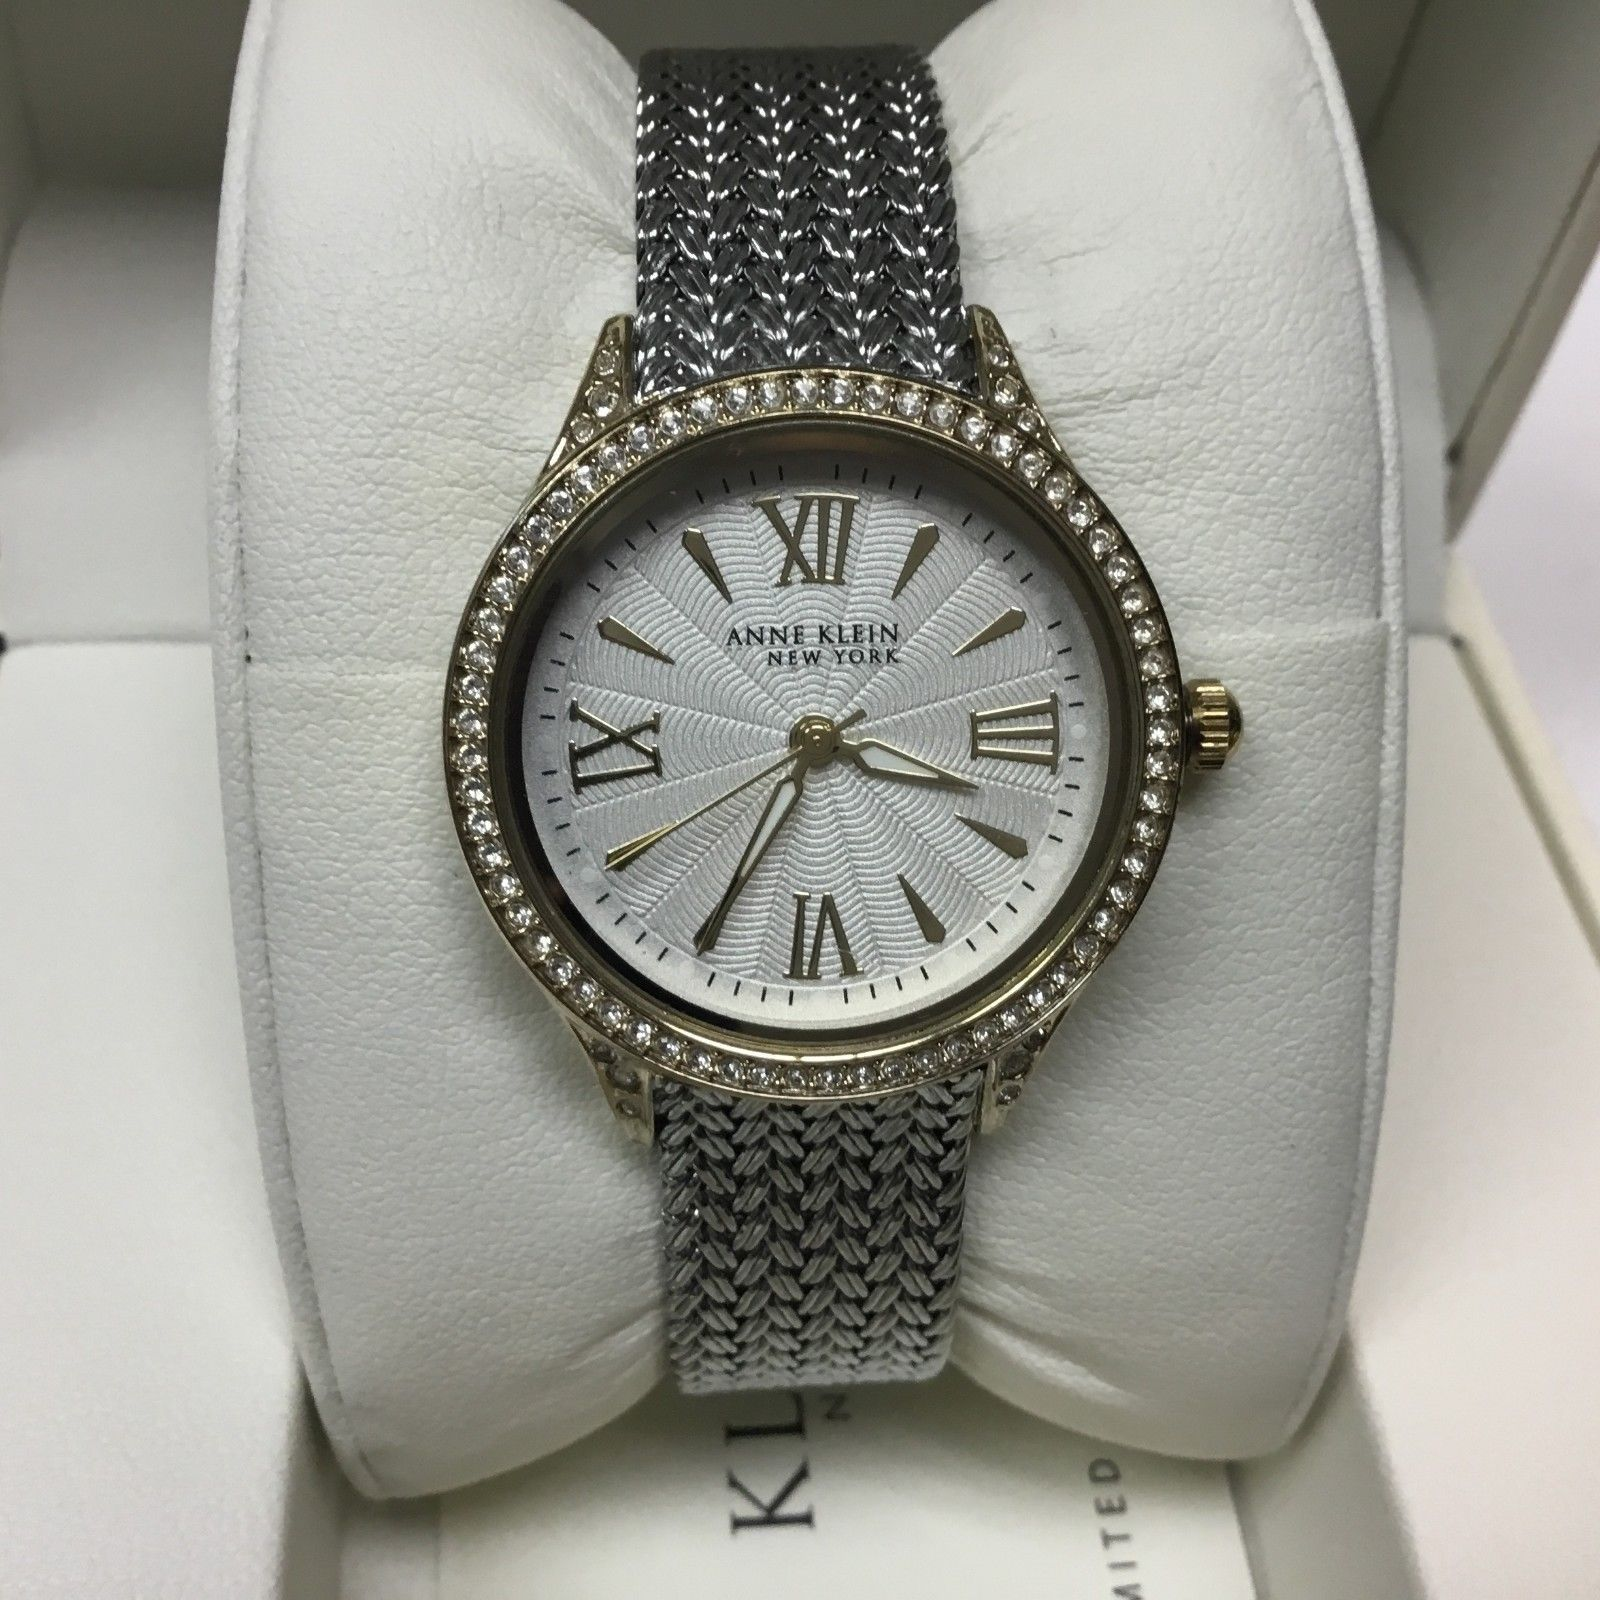 Primary image for Anne Klein Women's Watch 12/2291SVTT Mesh Band Two-Tone Swarovski Crystal